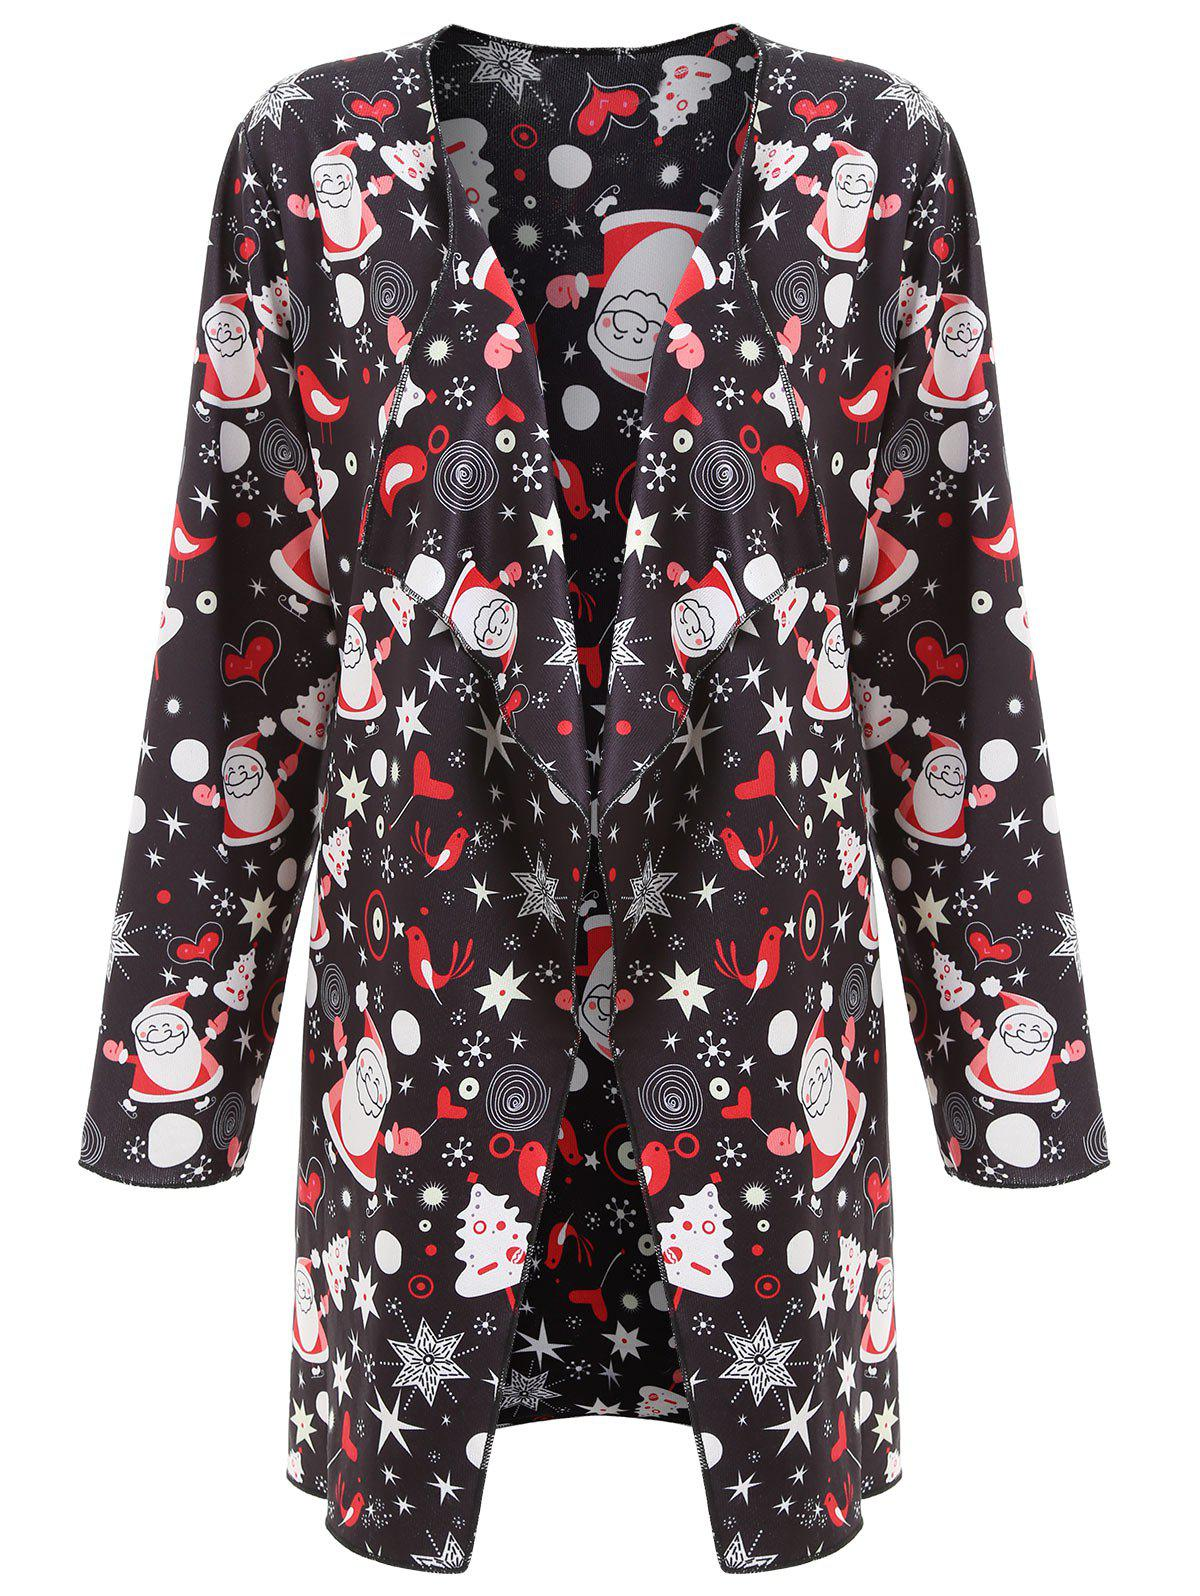 Father Christmas Printed Plus Size Long Draped CoatWOMEN<br><br>Size: XL; Color: BLACK; Clothes Type: Trench; Material: Polyester; Type: Asymmetric Length; Shirt Length: Long; Sleeve Length: Full; Collar: Collarless; Pattern Type: Print; Embellishment: Pattern; Style: Fashion; Season: Fall,Winter; Weight: 0.5700kg; Package Contents: 1 x Coat;